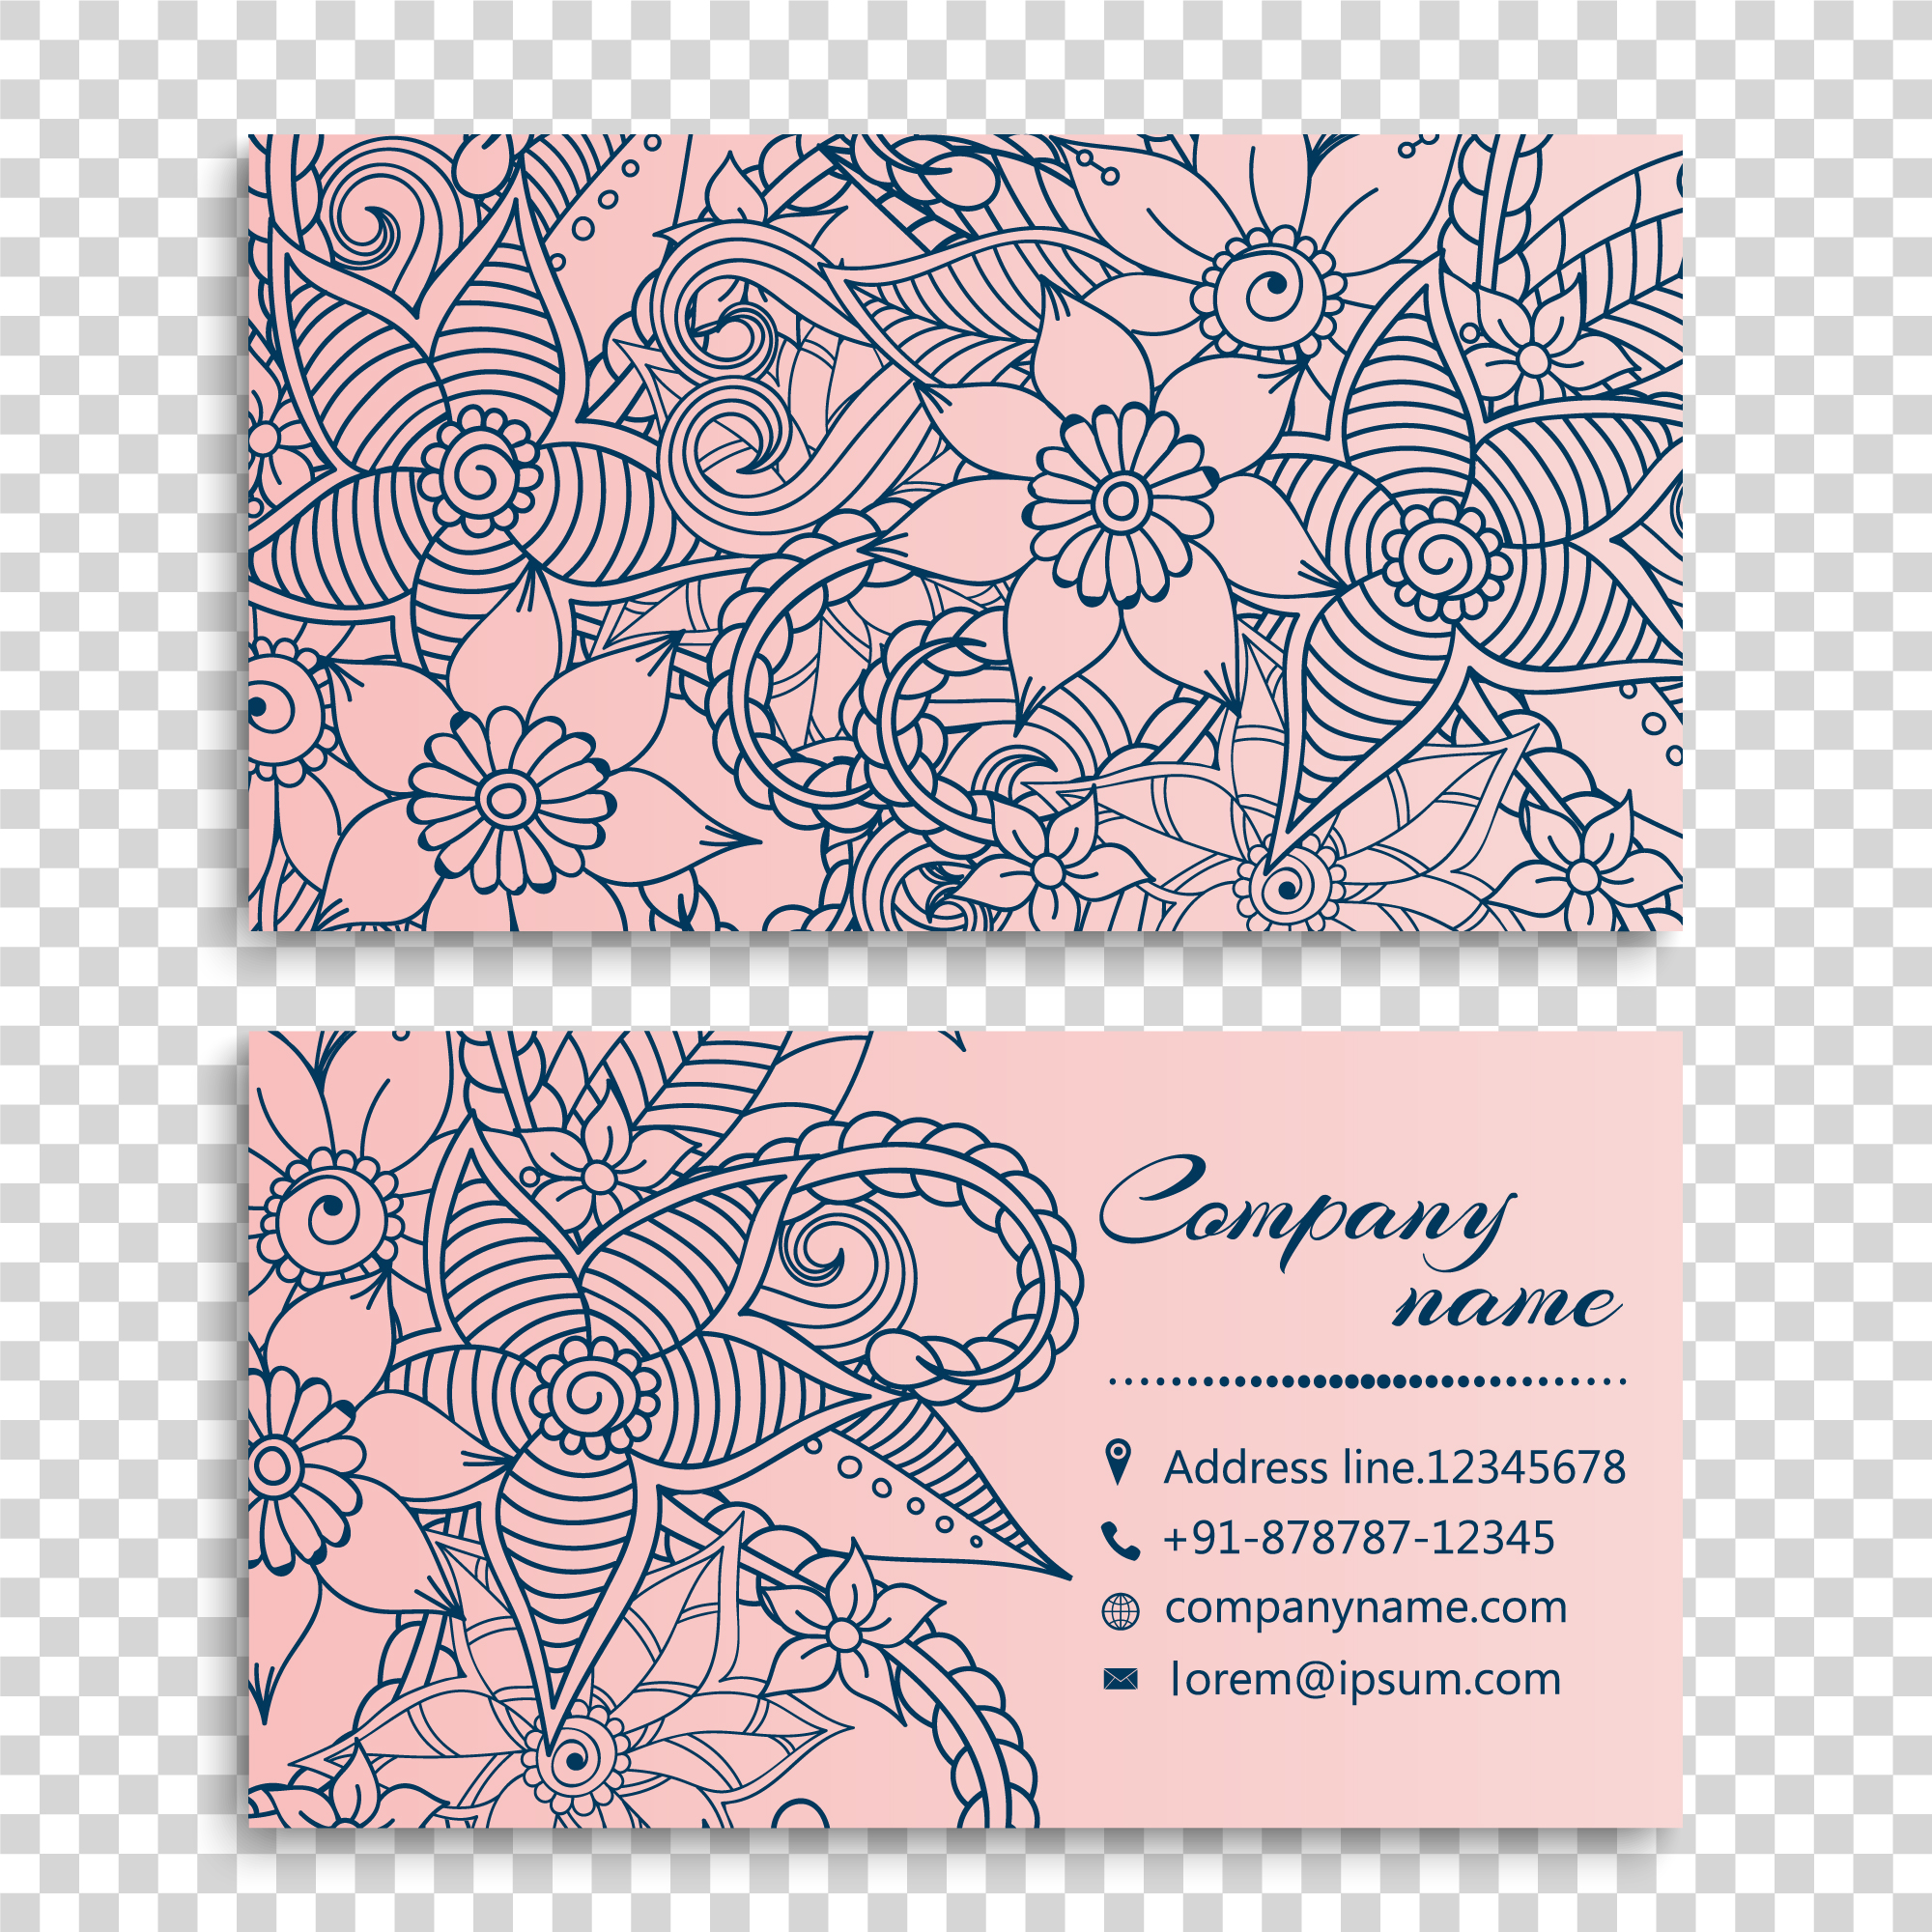 Hand drawn flowers business card